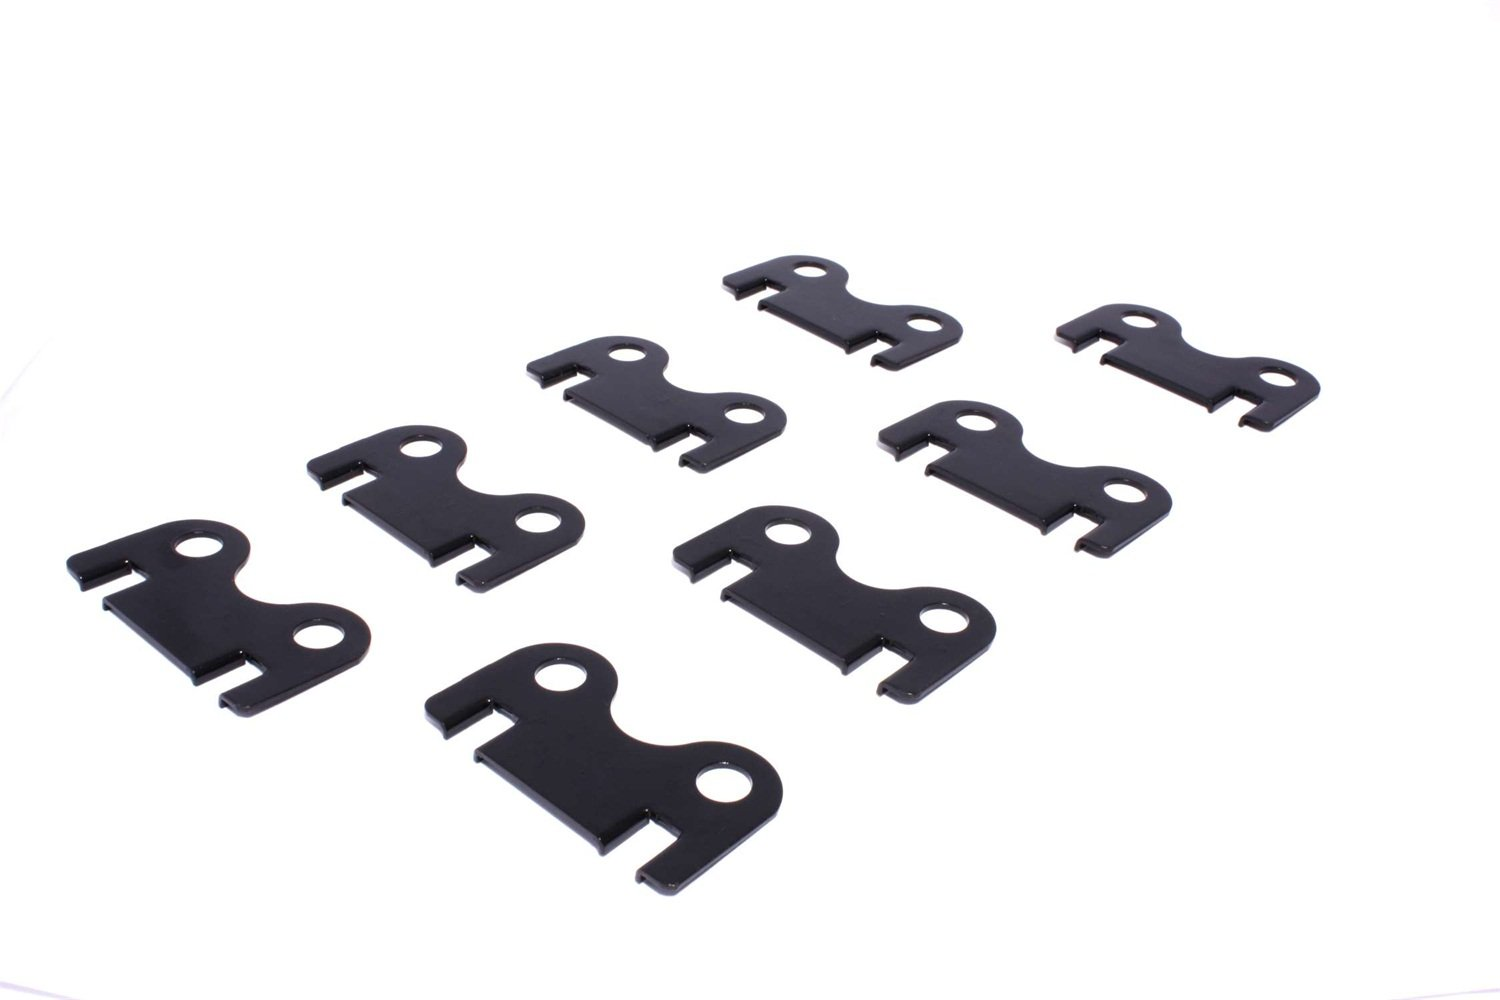 Competition Cams 48518 Guide Plate For Pontiac 350-455 1965-1990 COMP Cams 4851-8